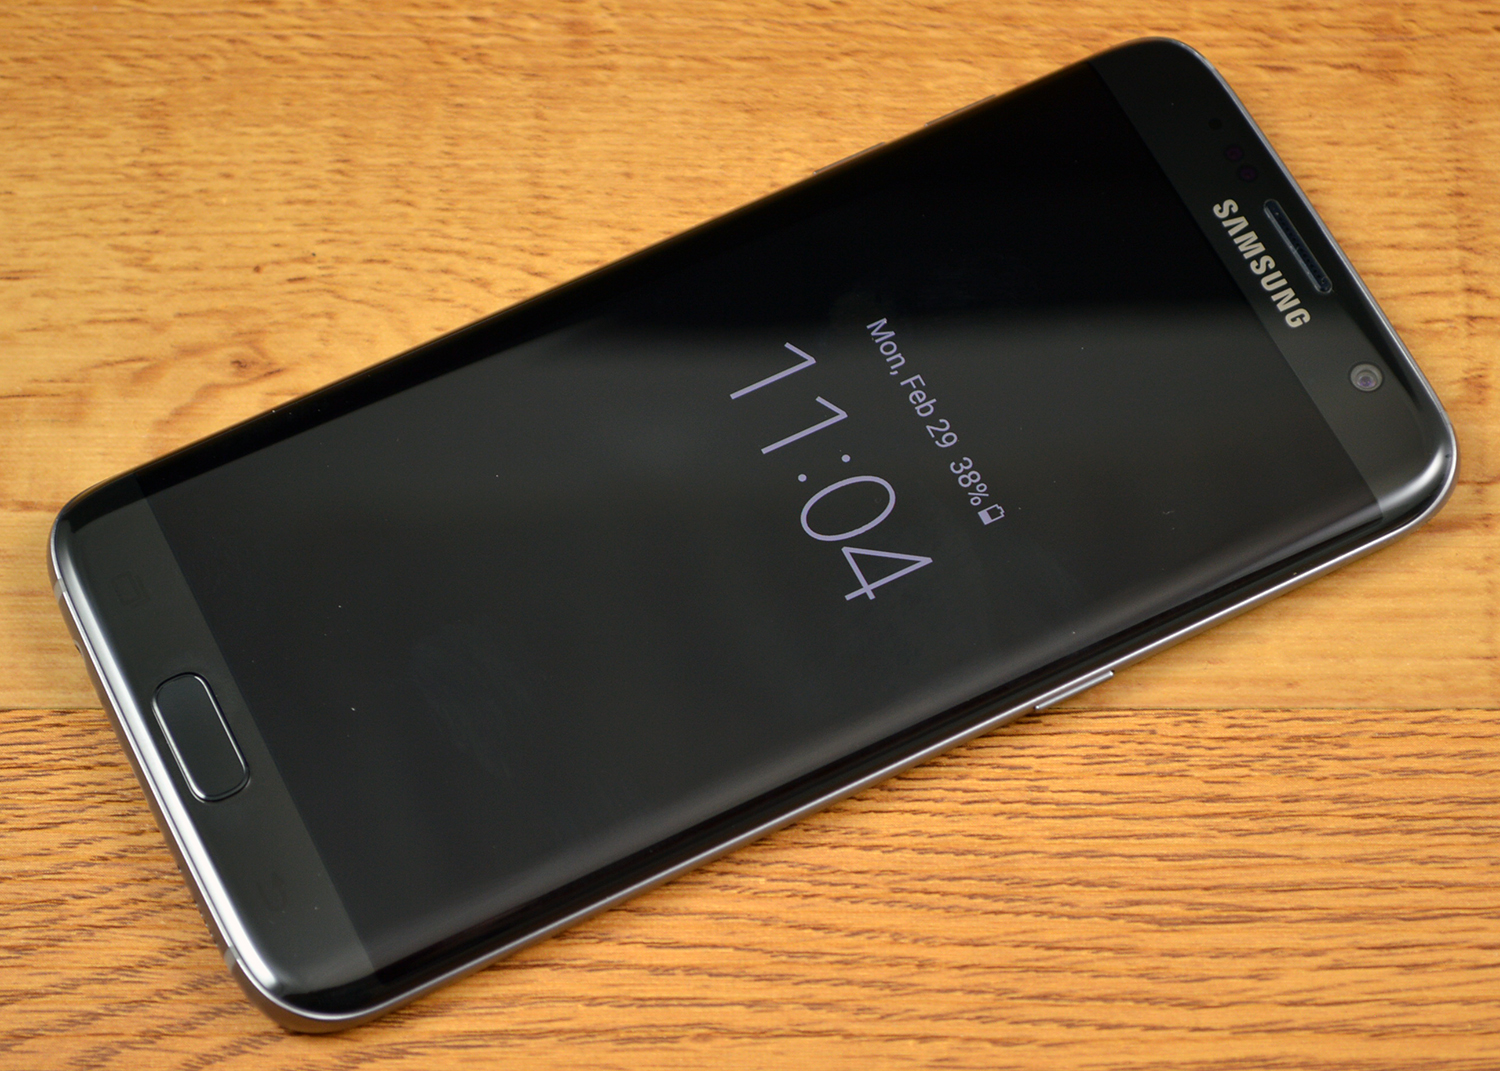 Samsung Galaxy S7 Edge Review Near Perfect Gadget Handphone Xiaomi The Always On Display Shows Basic Info